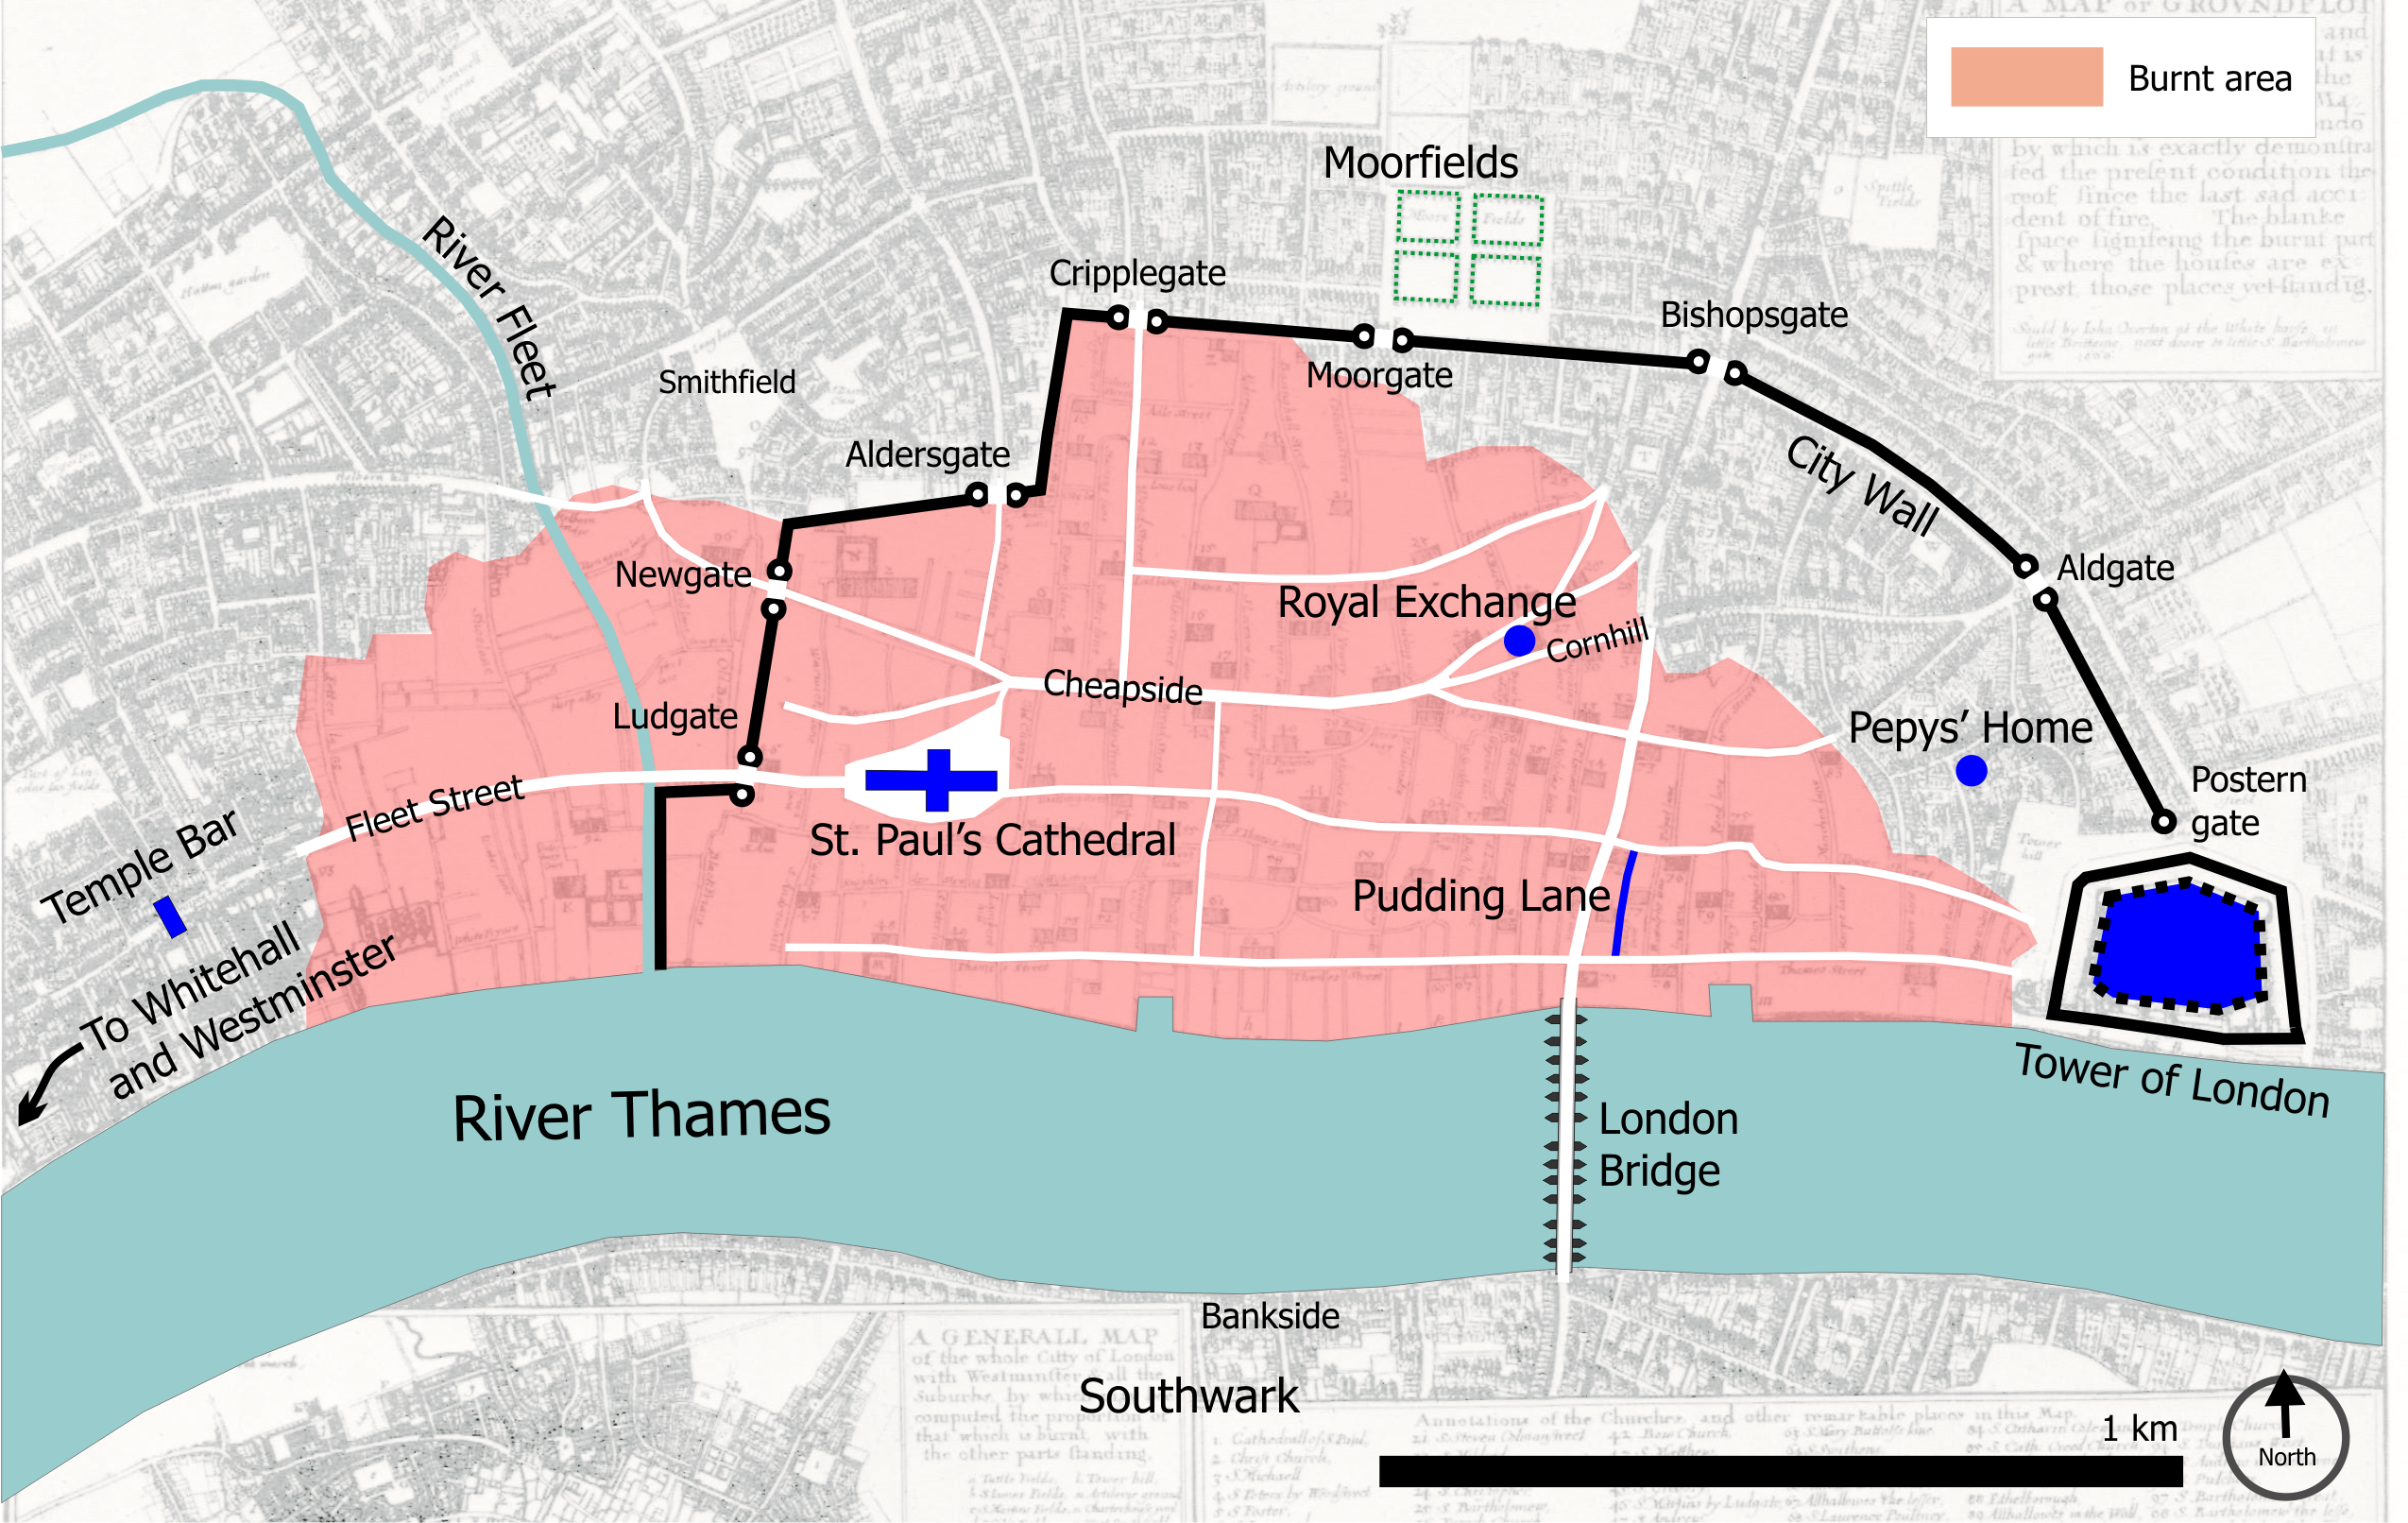 FileGreat fire of london mappng Wikimedia Commons